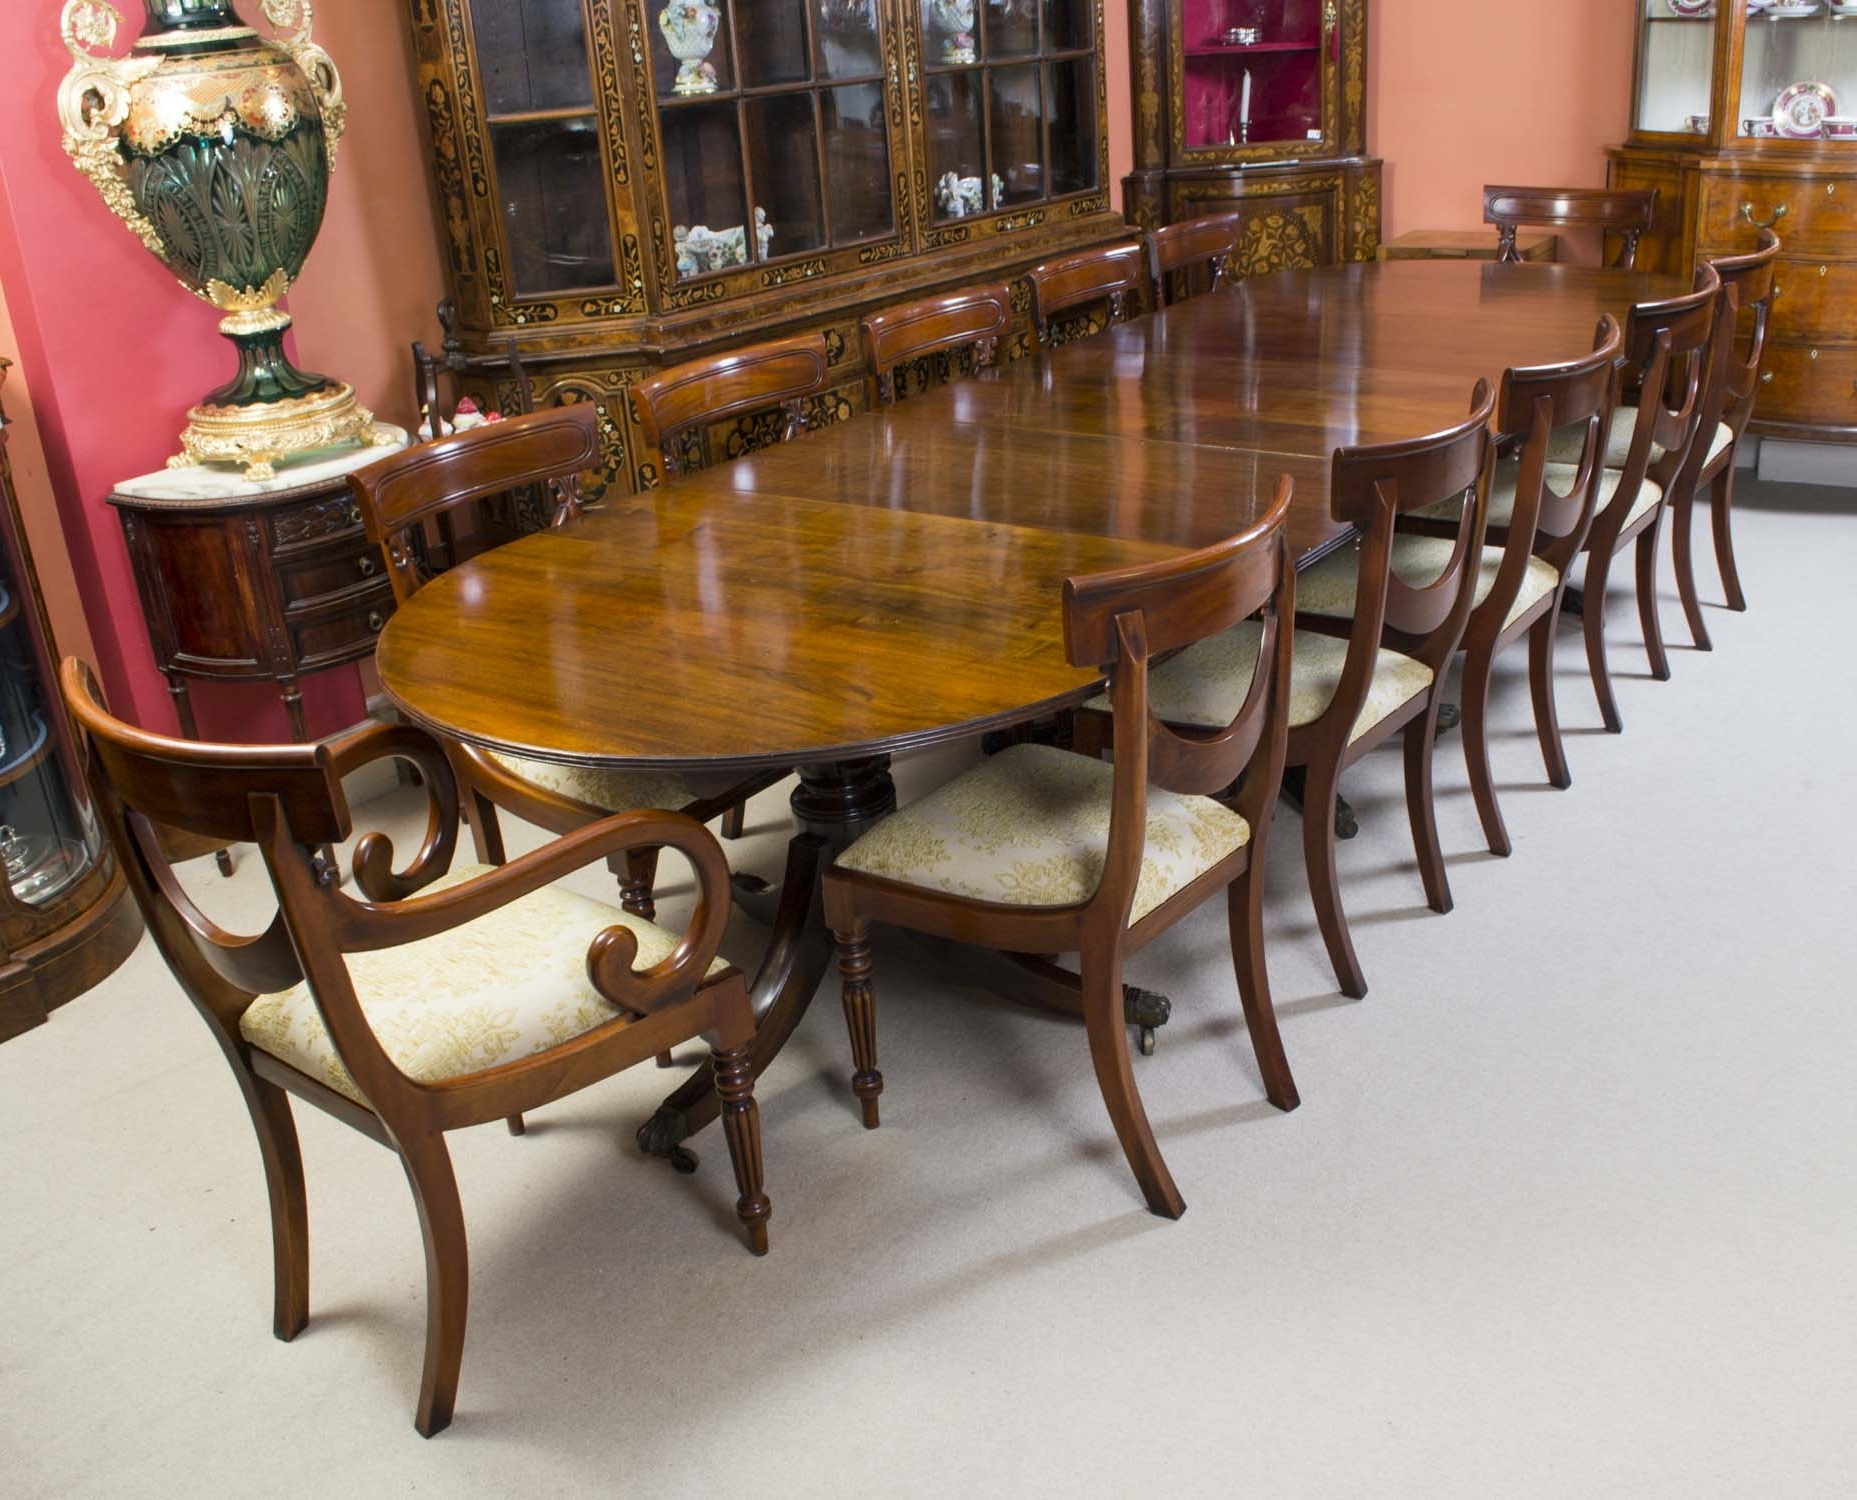 Mahogany Dining Tables Sets Intended For Best And Newest Antique Regency Mahogany Dining Table C1920 & 12 Chairs (View 16 of 25)